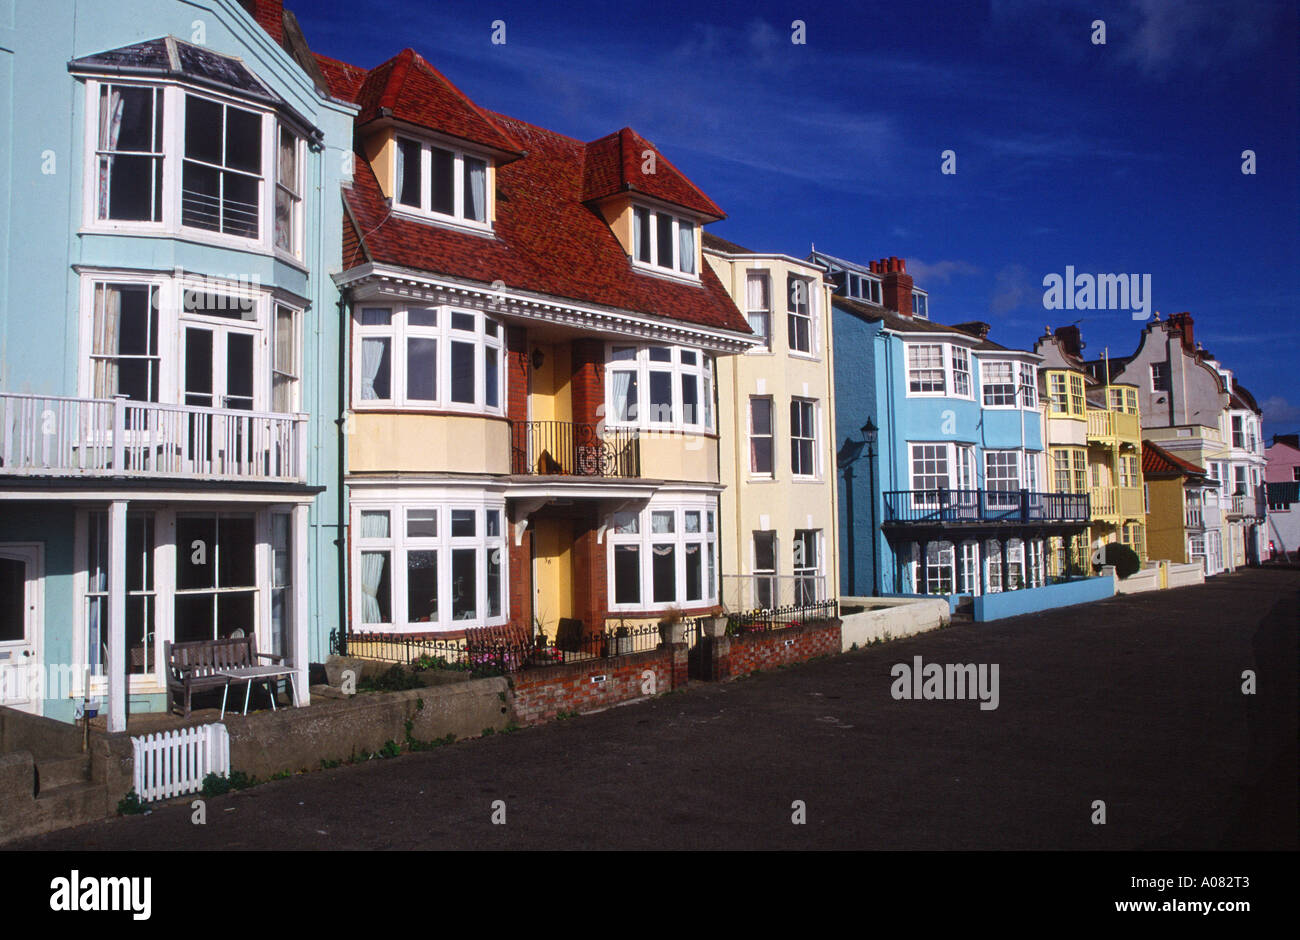 Buildings on the seafront promenade Aldeburgh Suffolk England - Stock Image